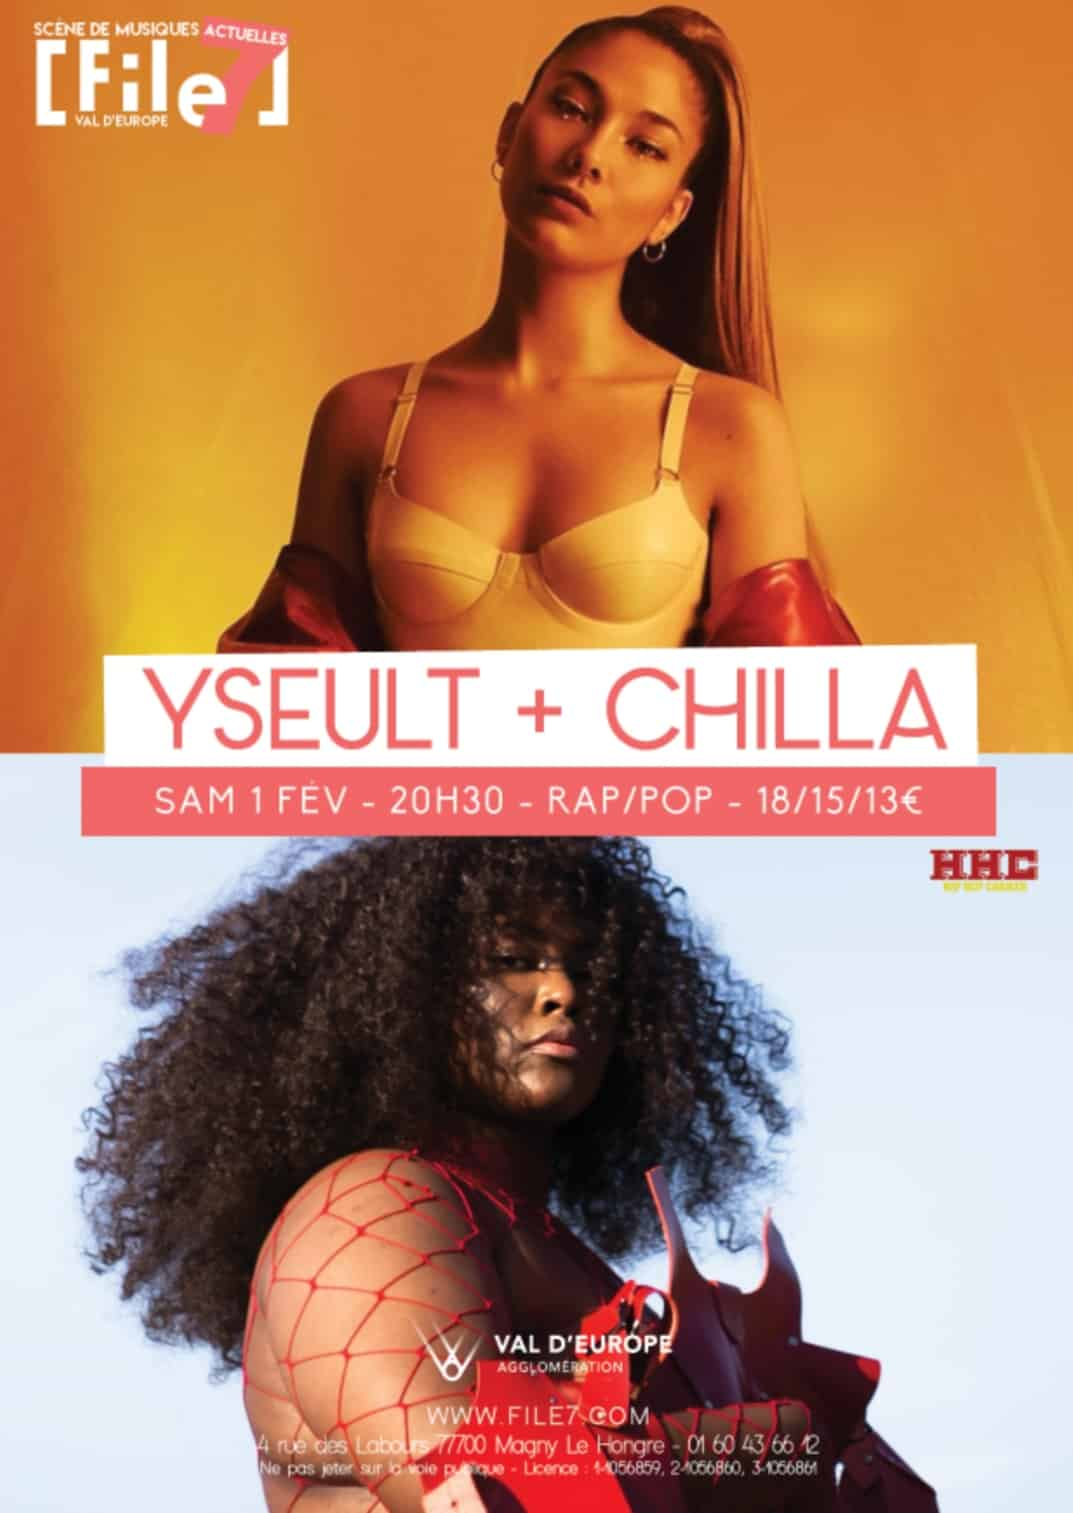 image-chilla-yseult-affiche-concert-files-7-concours